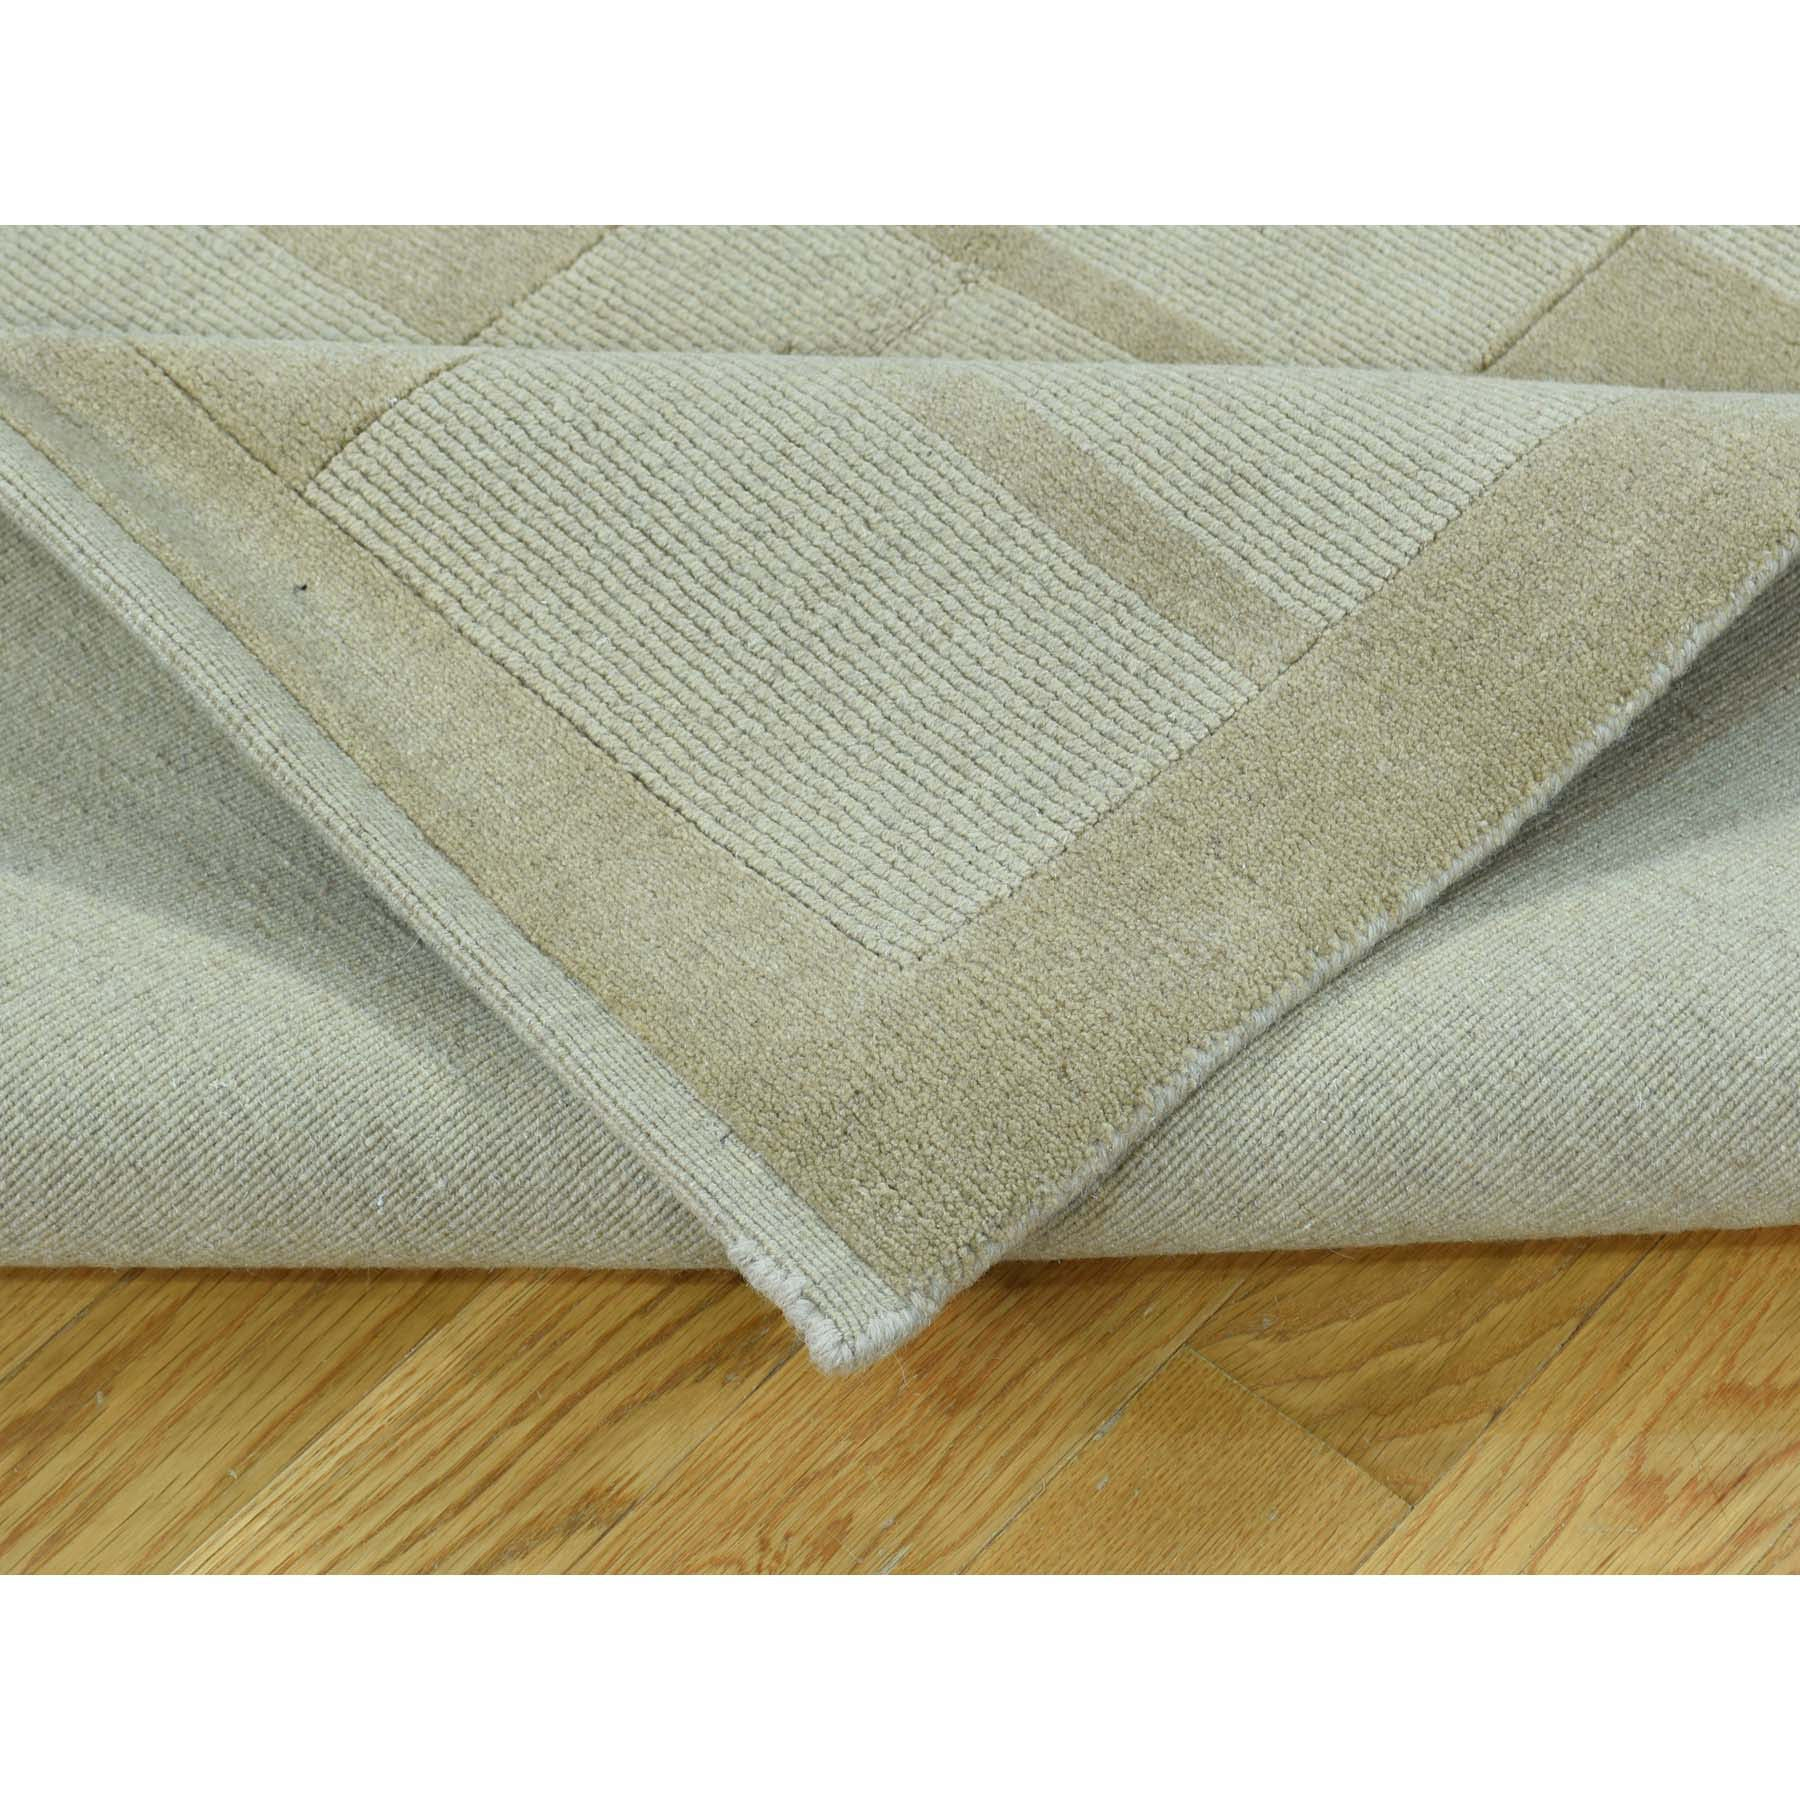 "Handmade Modern and Contemporary Rectangle Rug > Design# SH32276 > Size: 5'-0"" x 8'-2"" [ONLINE ONLY]"